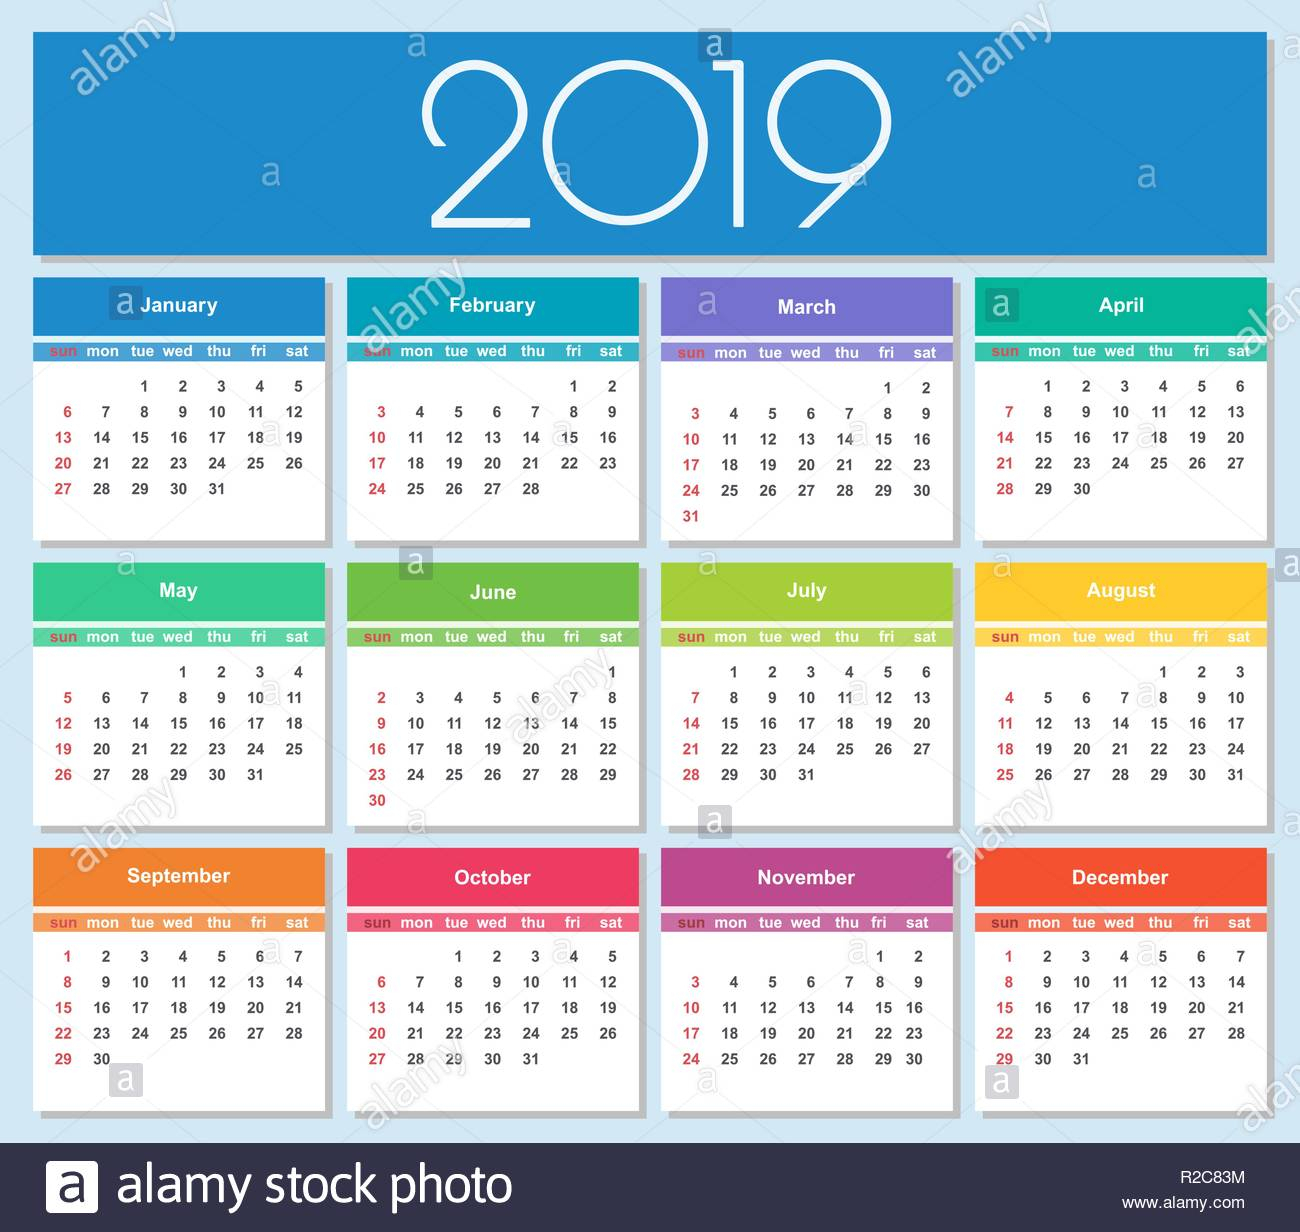 New Year Colorful Calendar | Wallpapers Snipe